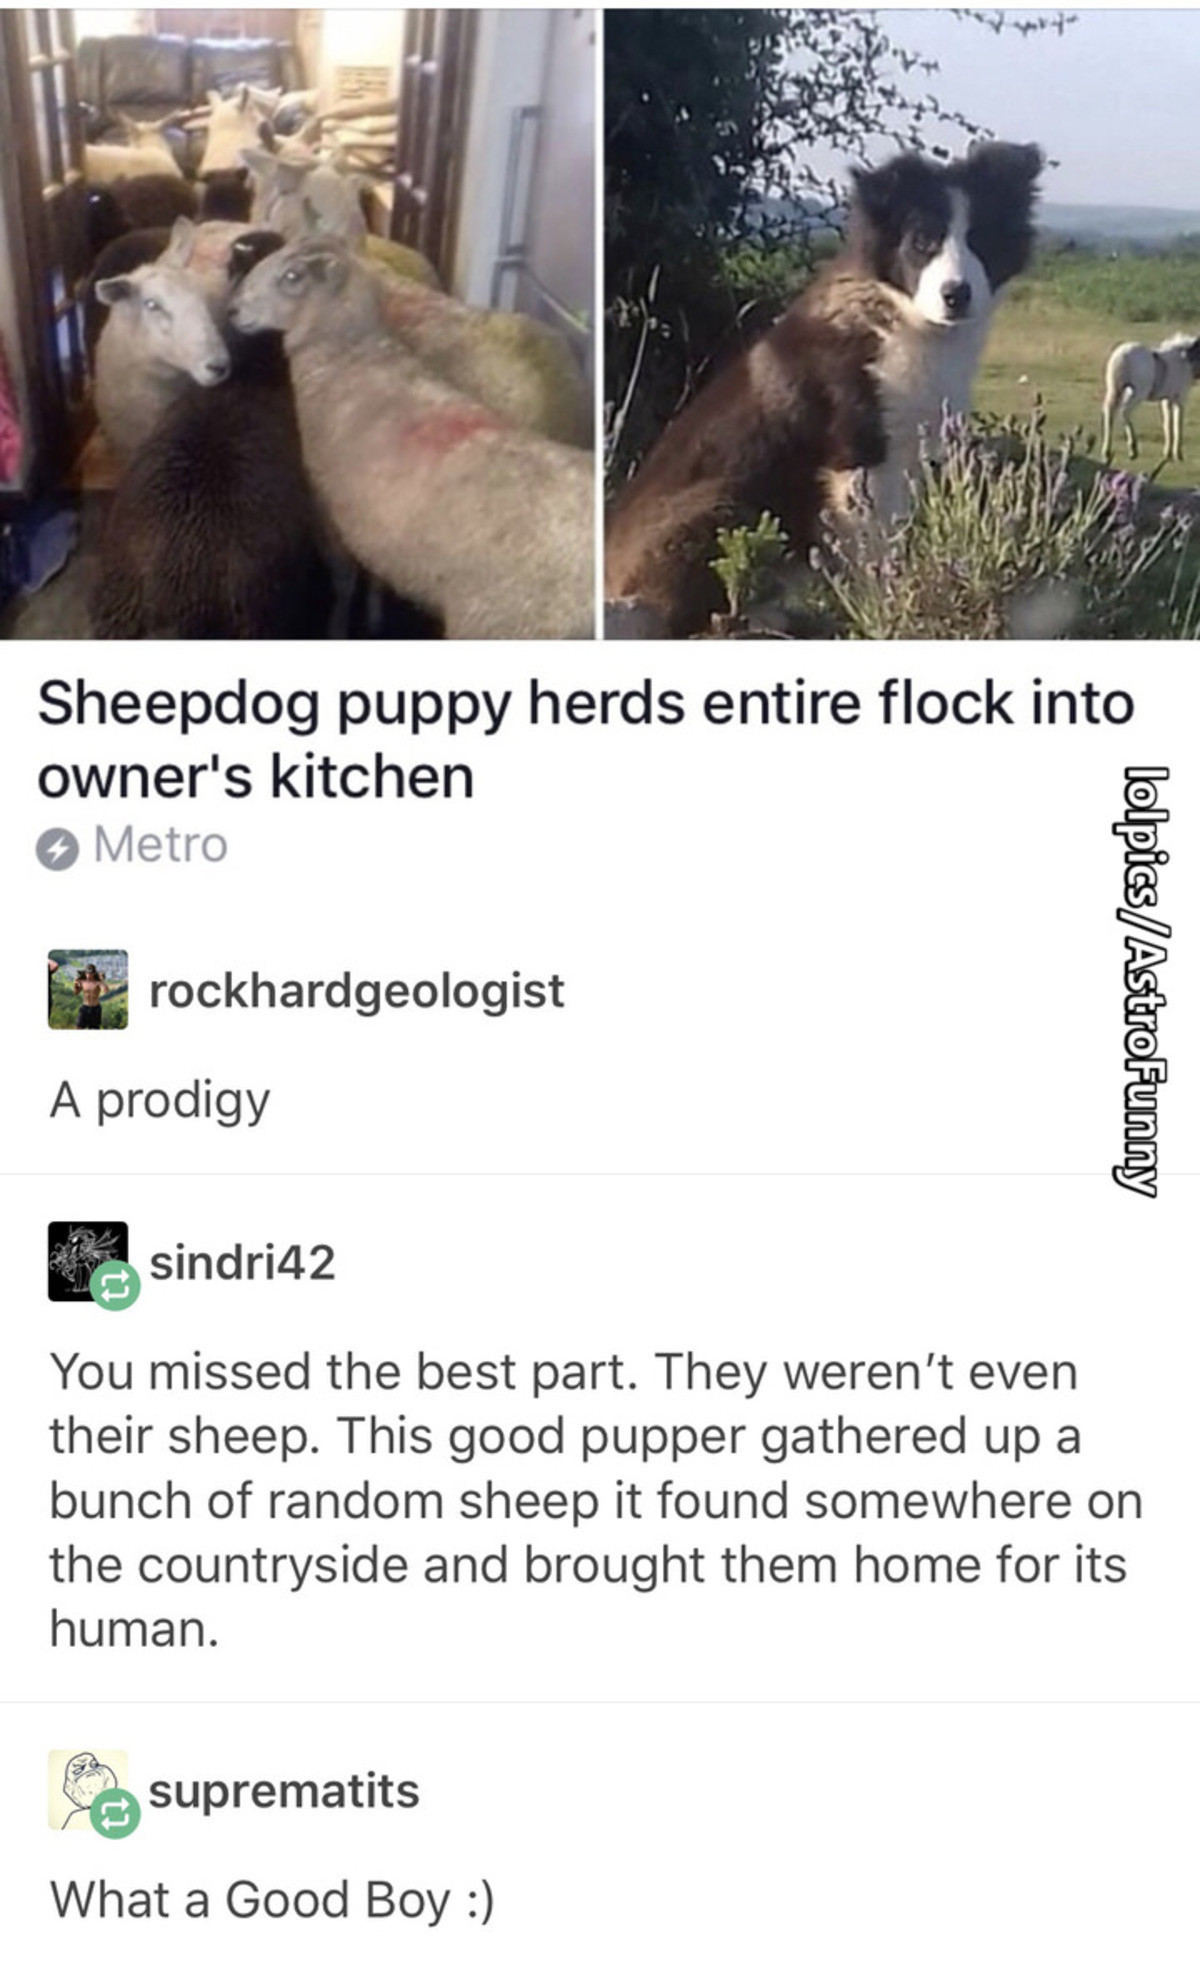 The Goodest Boy. join list: CuteDogs (234 subs)Mention Clicks: 4485Msgs Sent: 28713Mention History. Sheepdog puppy herds entire flock into owner' s kitchen 9 Me